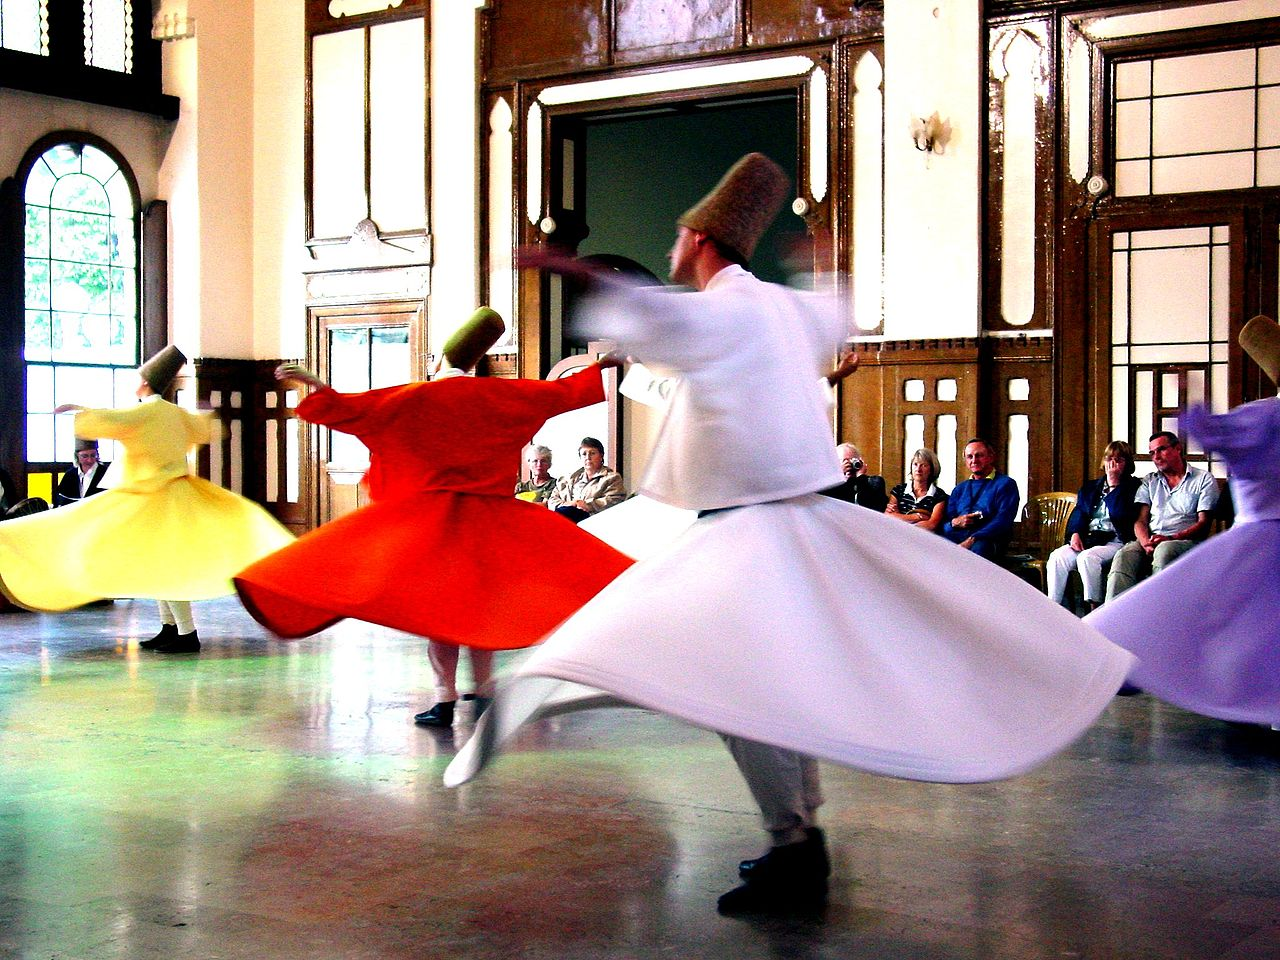 1280px-Whirling_Dervishes_2.jpg